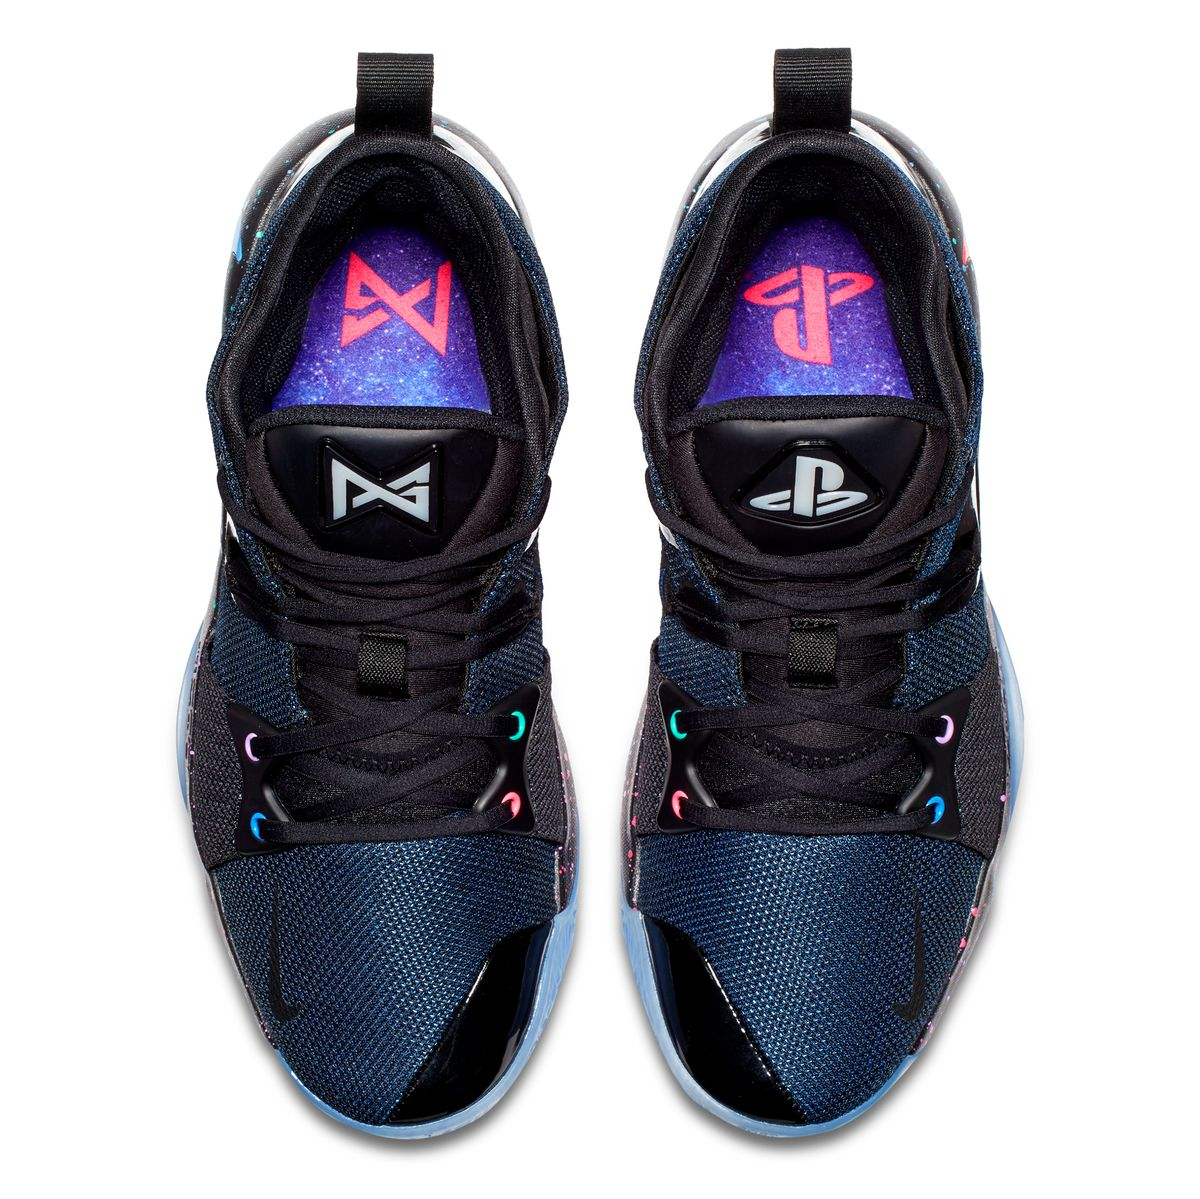 bd1cb37bfe4d Nike and PlayStation unite on these limited edition sneakers - The Verge